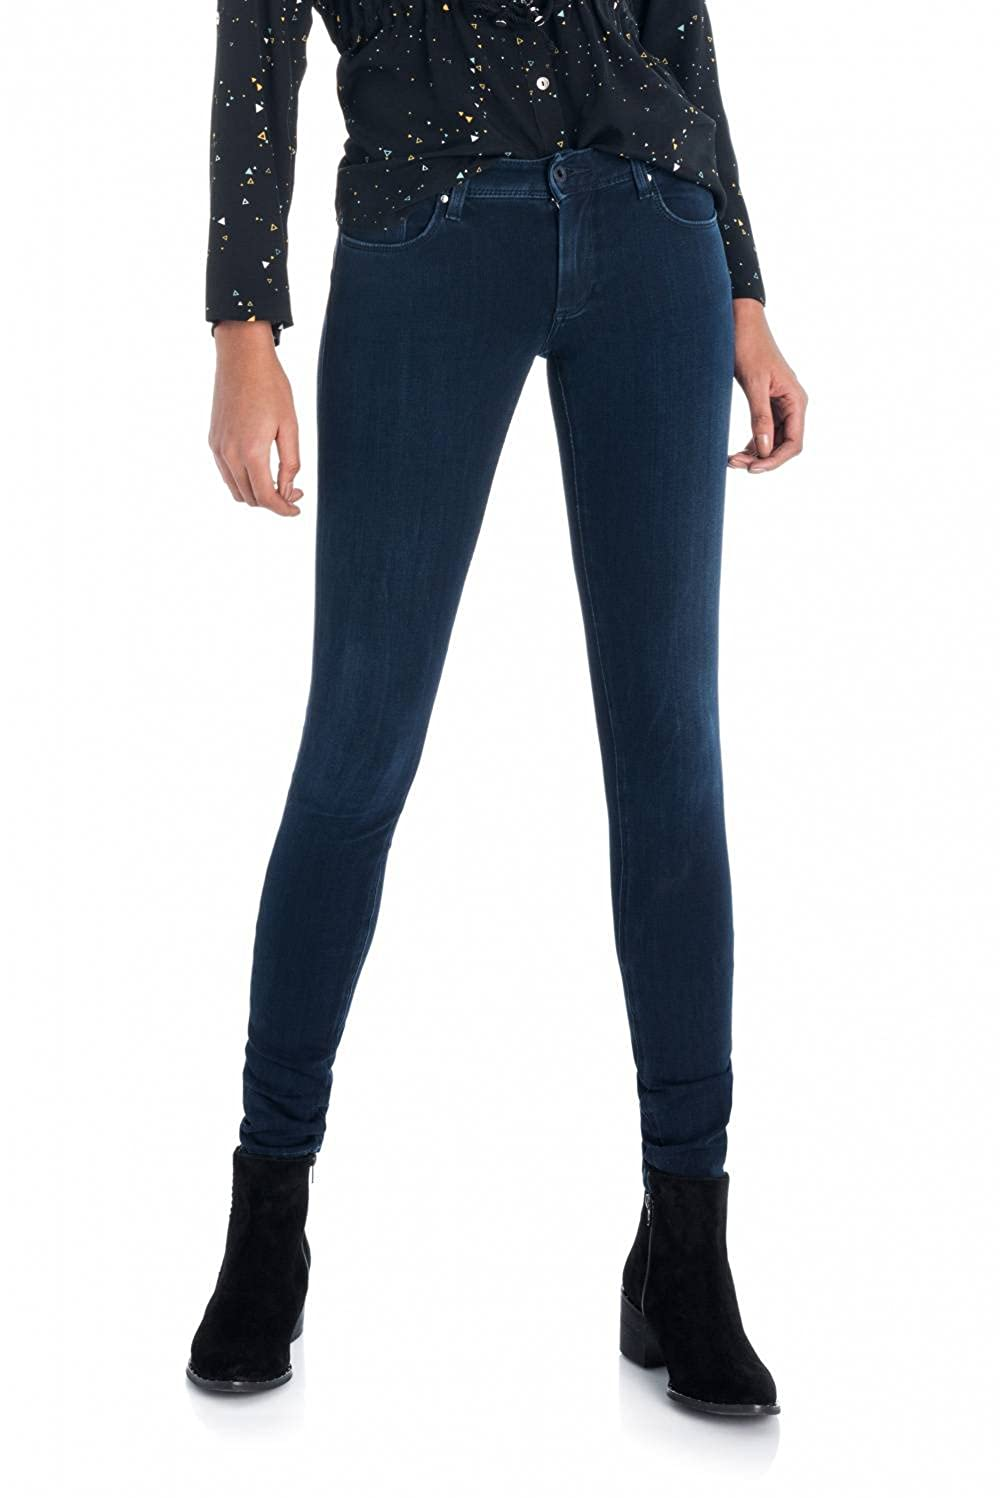 TALLA 25/32. Salsa Vaqueros Wonder Push Up Skinny Premium Flex